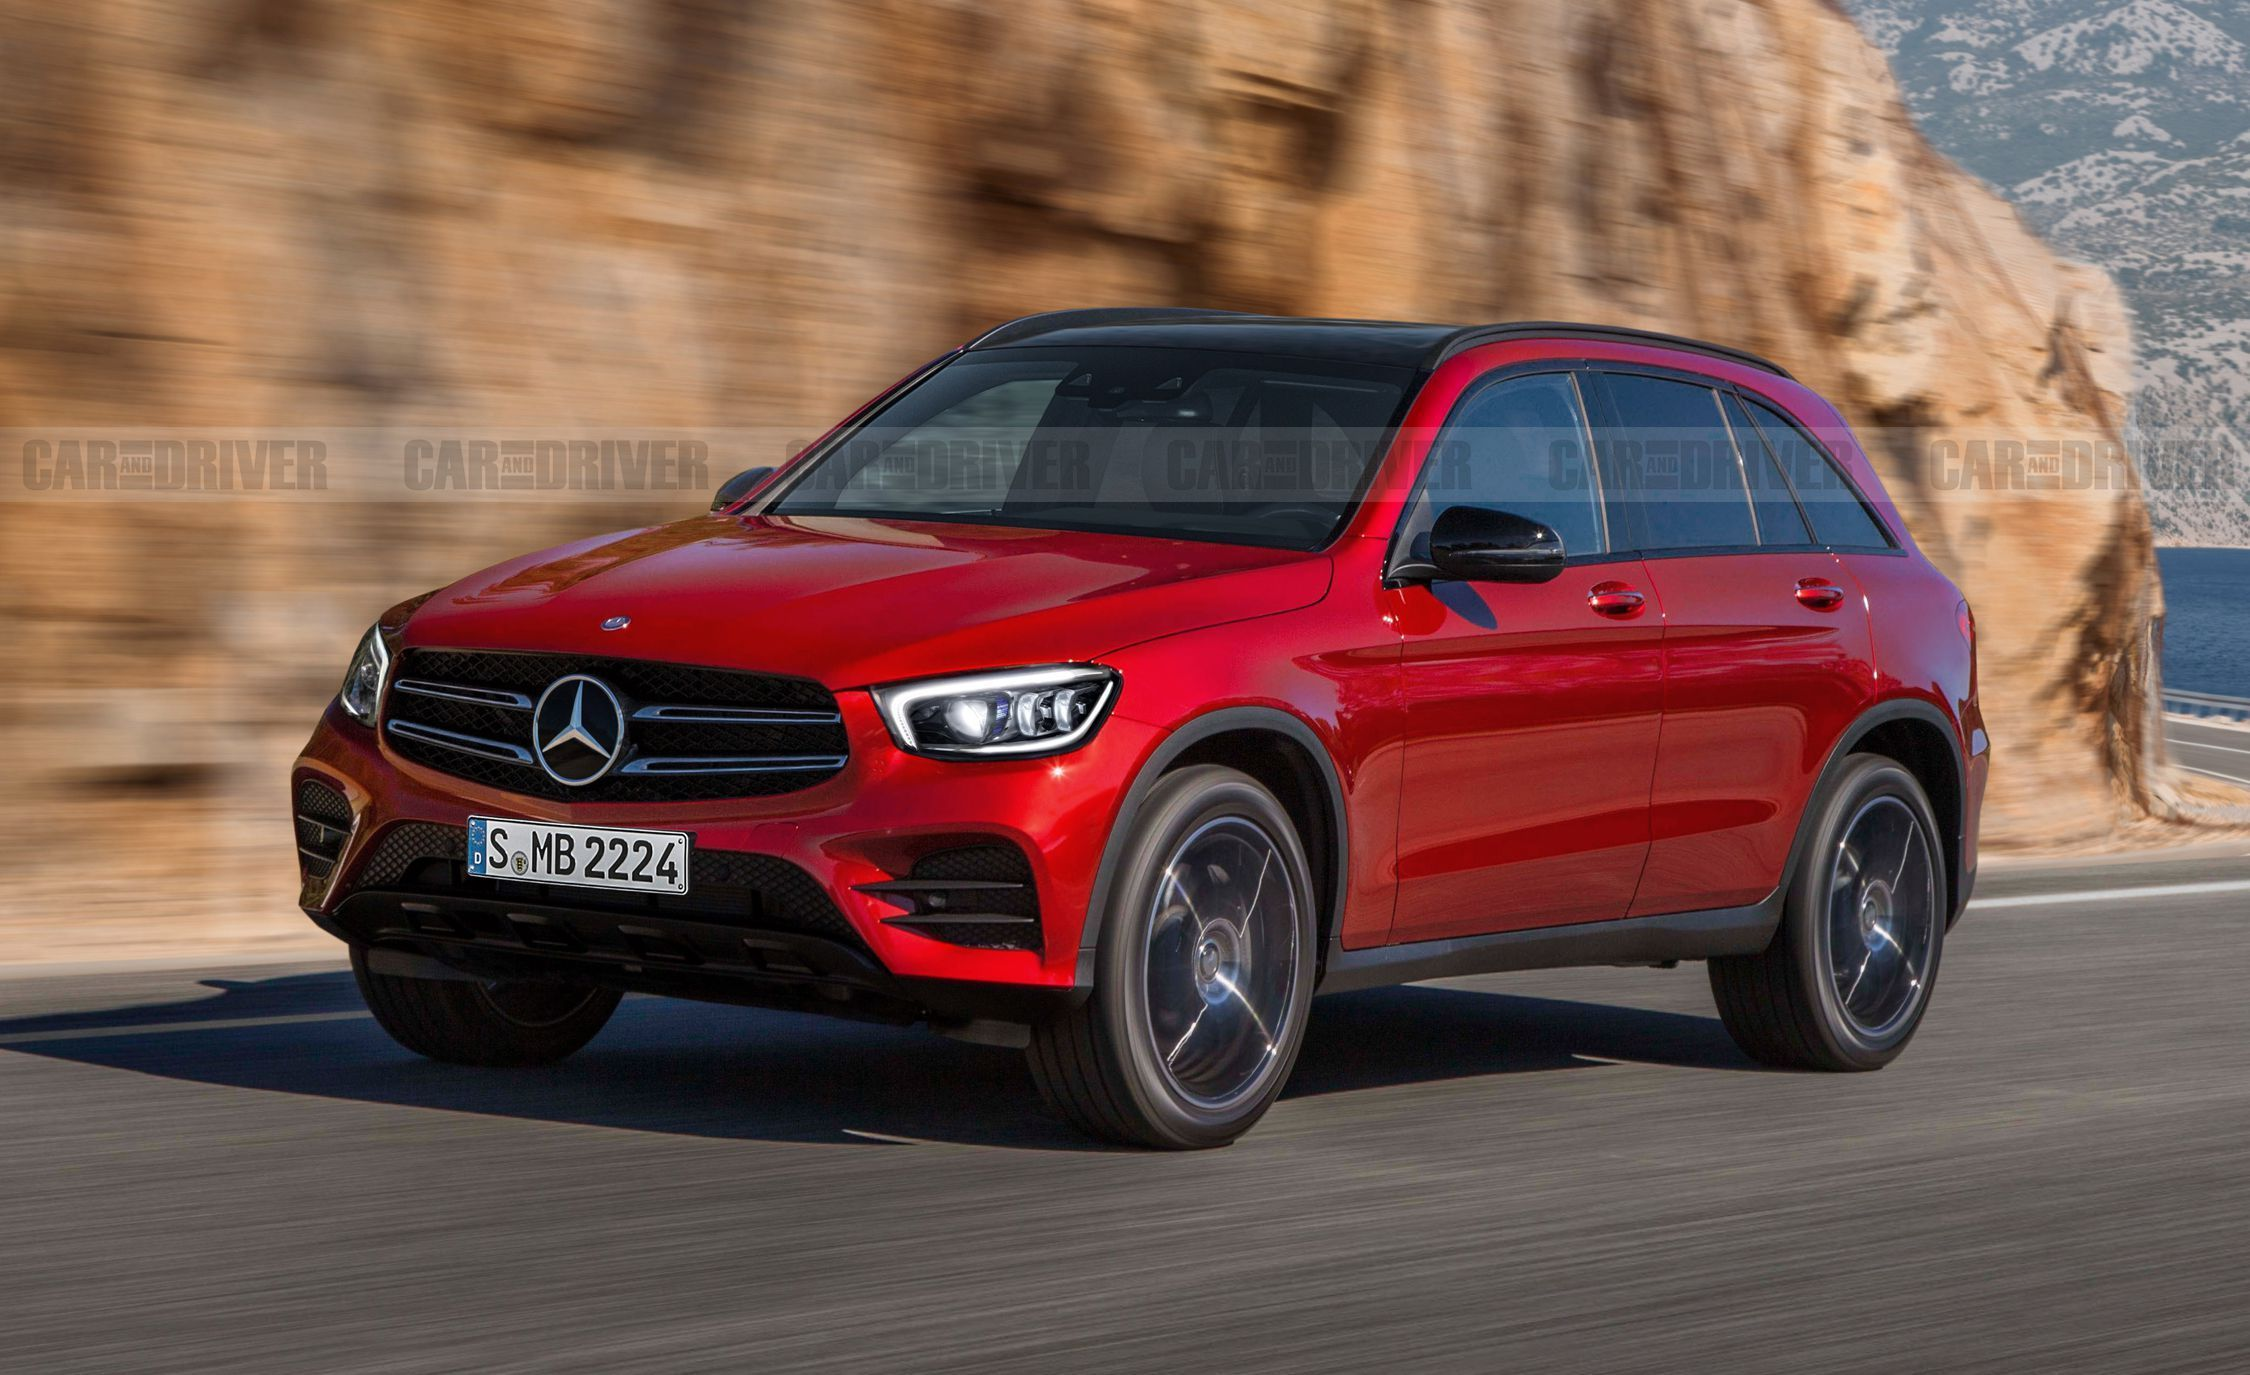 Mercedes Glc 2020 Prices With Images Mercedes Hybrid Car